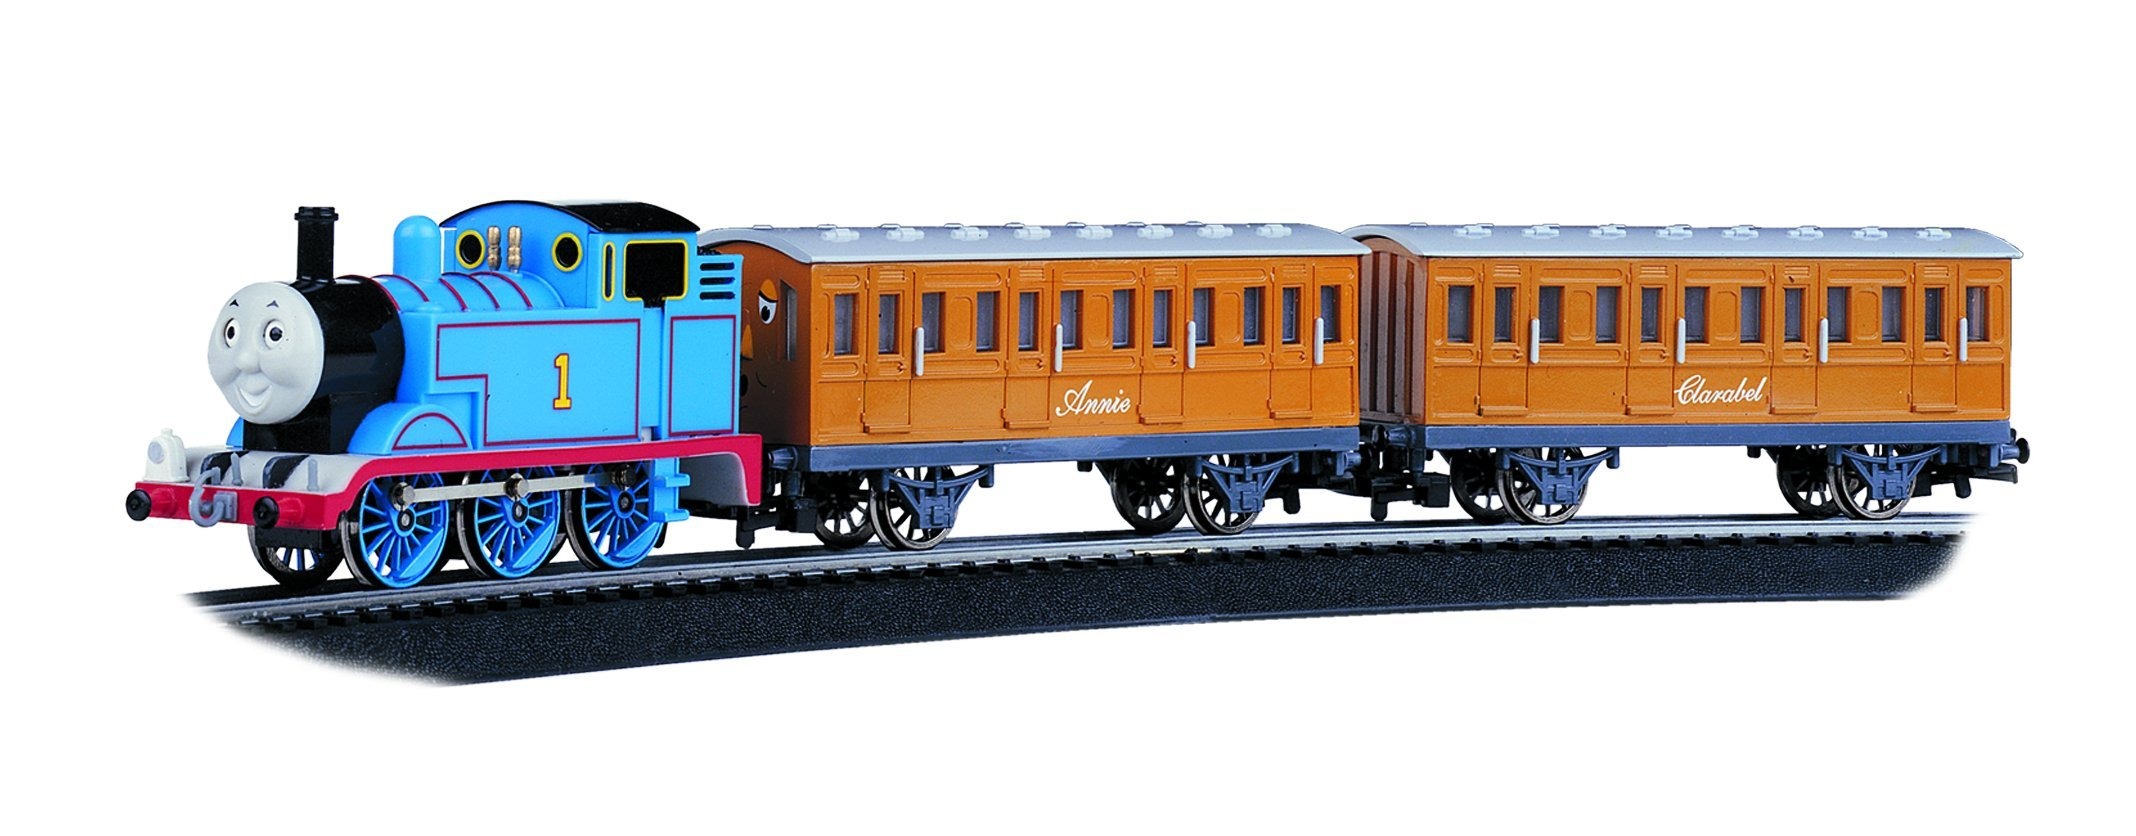 Bachmann Trains - Thomas & Friends Thomas with Annie and Clarabel Ready To Run Electric Train Set - HO Scale by Bachmann Trains